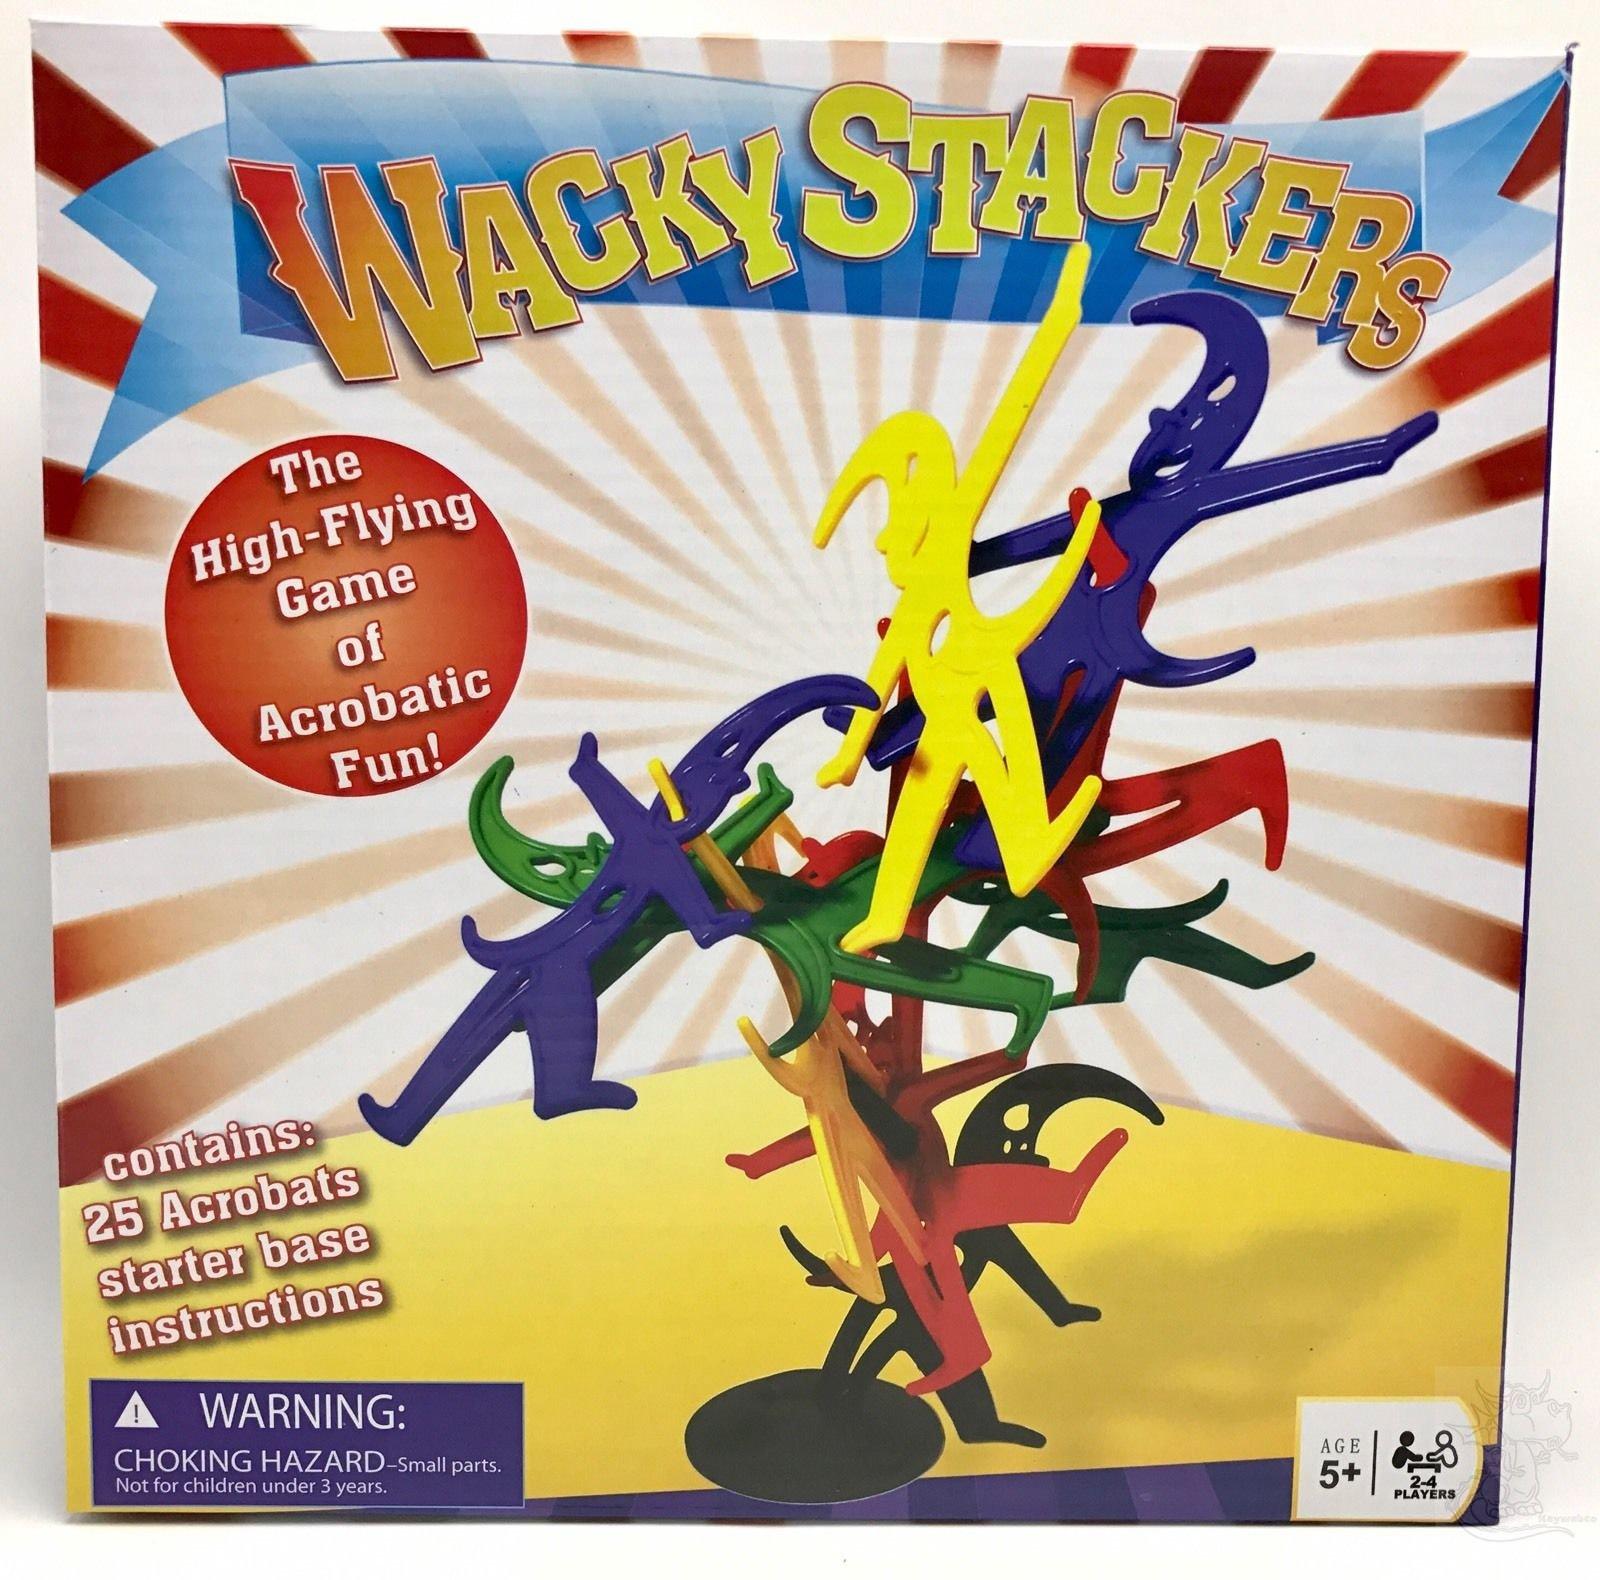 NEW Wacky Stackers High-flying Game of Acrobatic Fun 5+ Boys and Girls